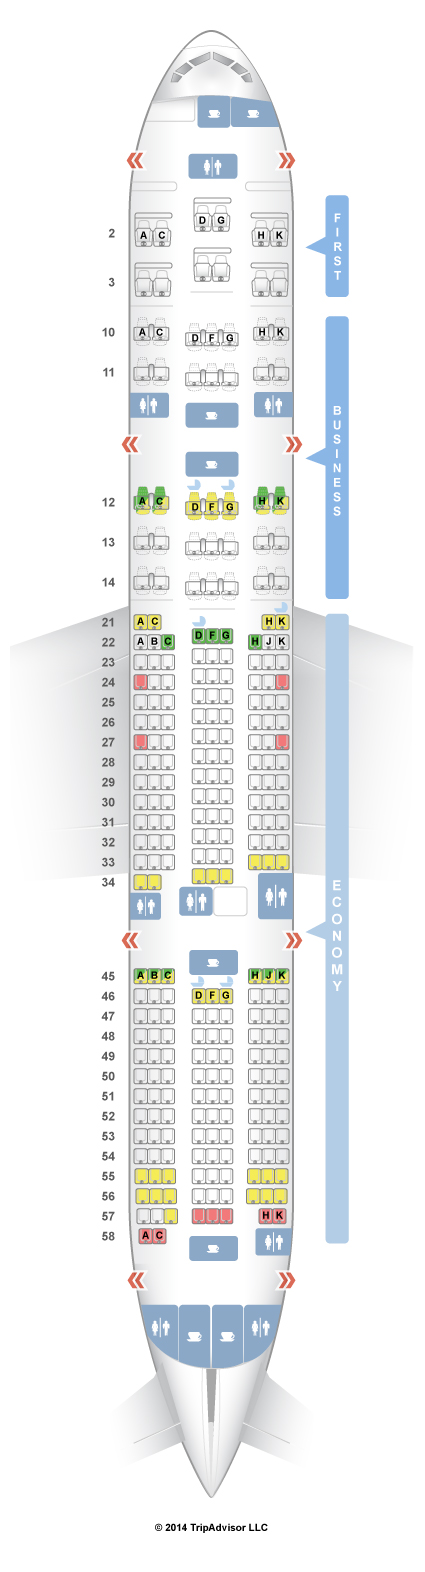 Seatguru seat map el al boeing also places  rh pinterest